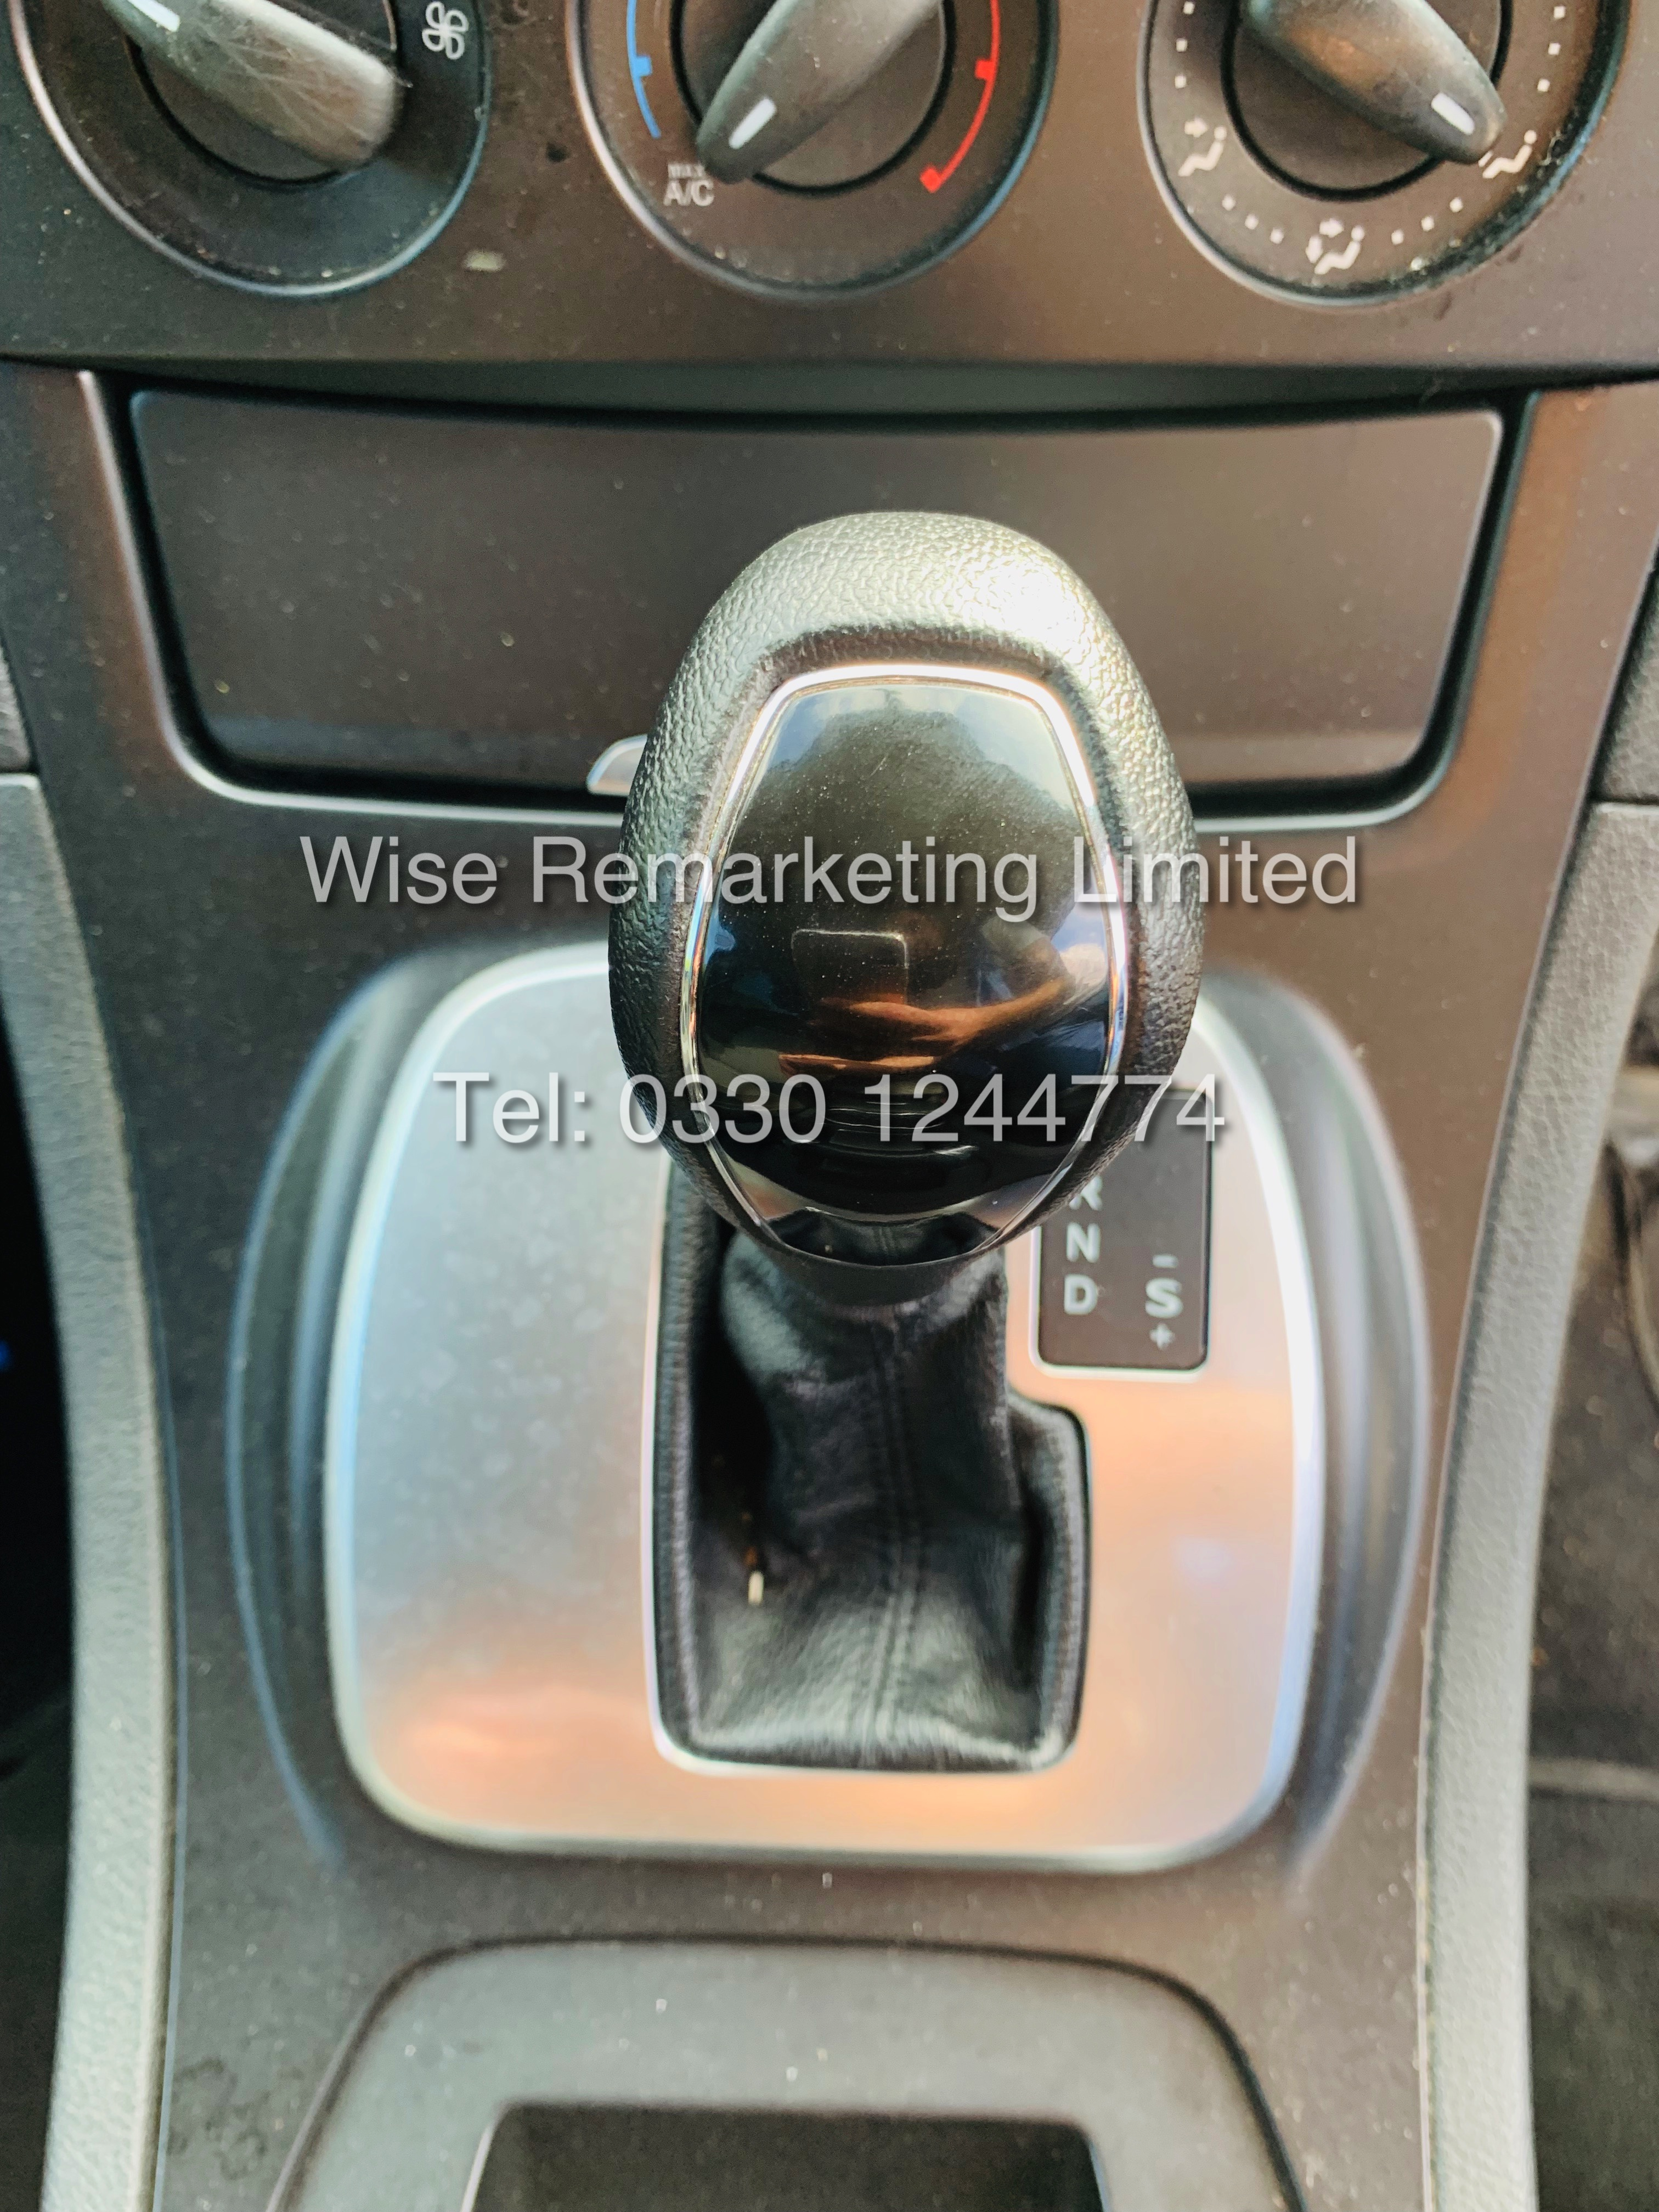 FORD GALAXY ZETEC 2.0L TDCI AUTO 7 SEATER MPV 63 REG *1 OWNER* - Image 16 of 18